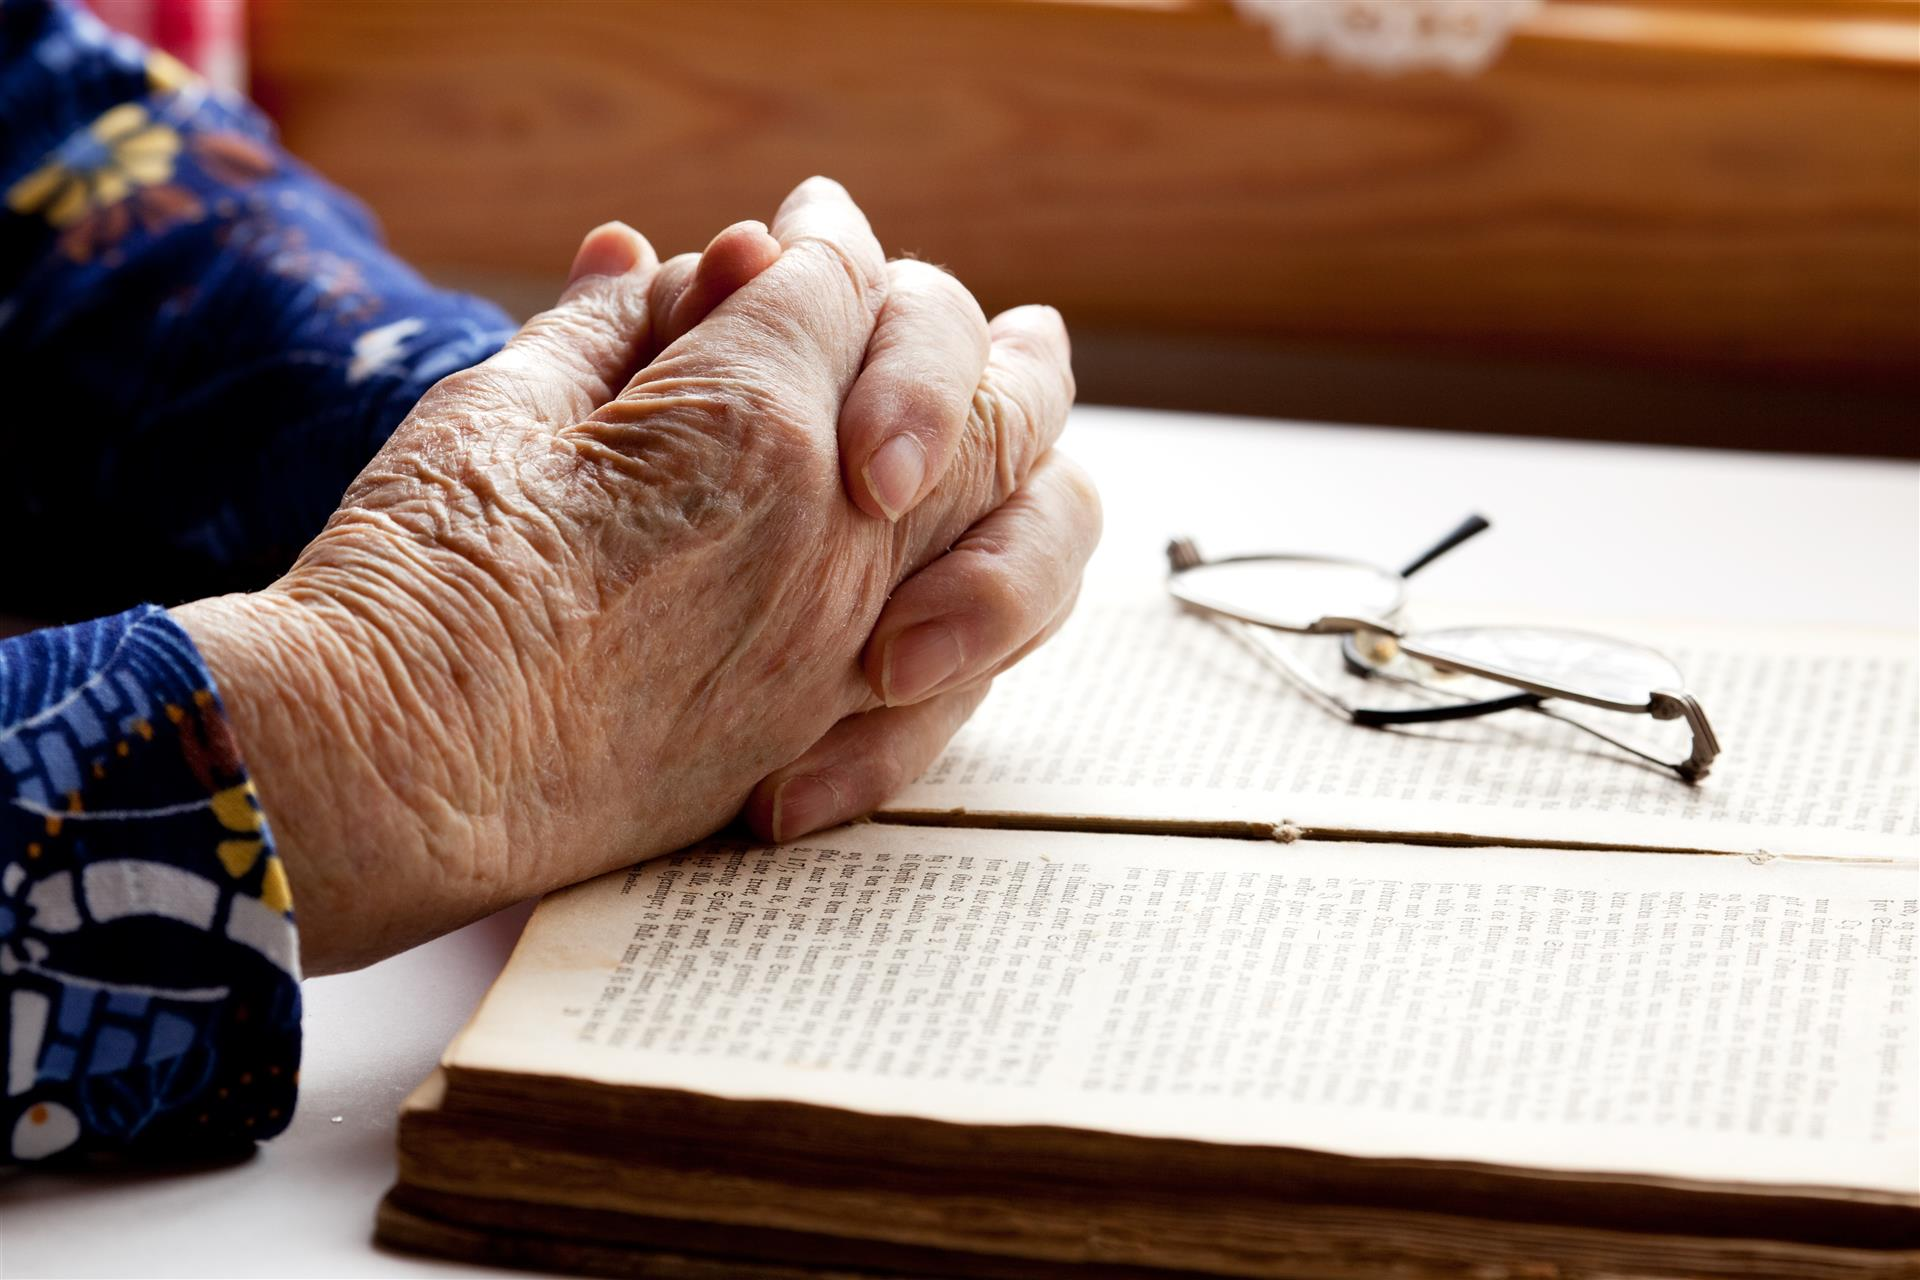 HOW DOES A FAITH-BASED ASSISTED LIVING COMMUNITY SUPPORT A VIBRANT LIFESTYLE?